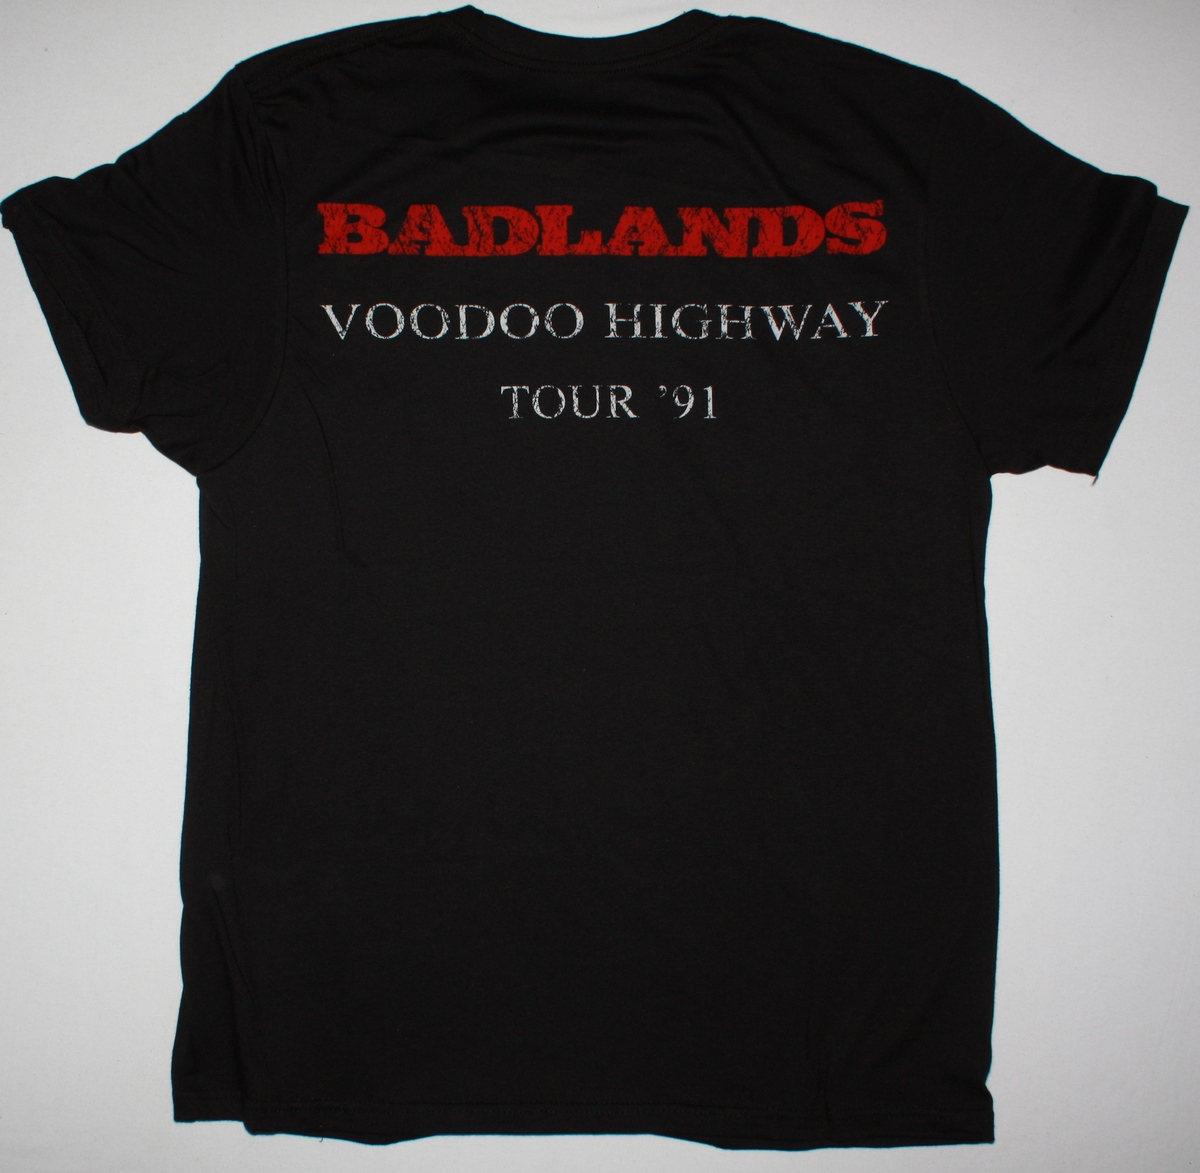 BADLANDS VOODO HIGHWAY 91 NEW BLACK T-SHIRT